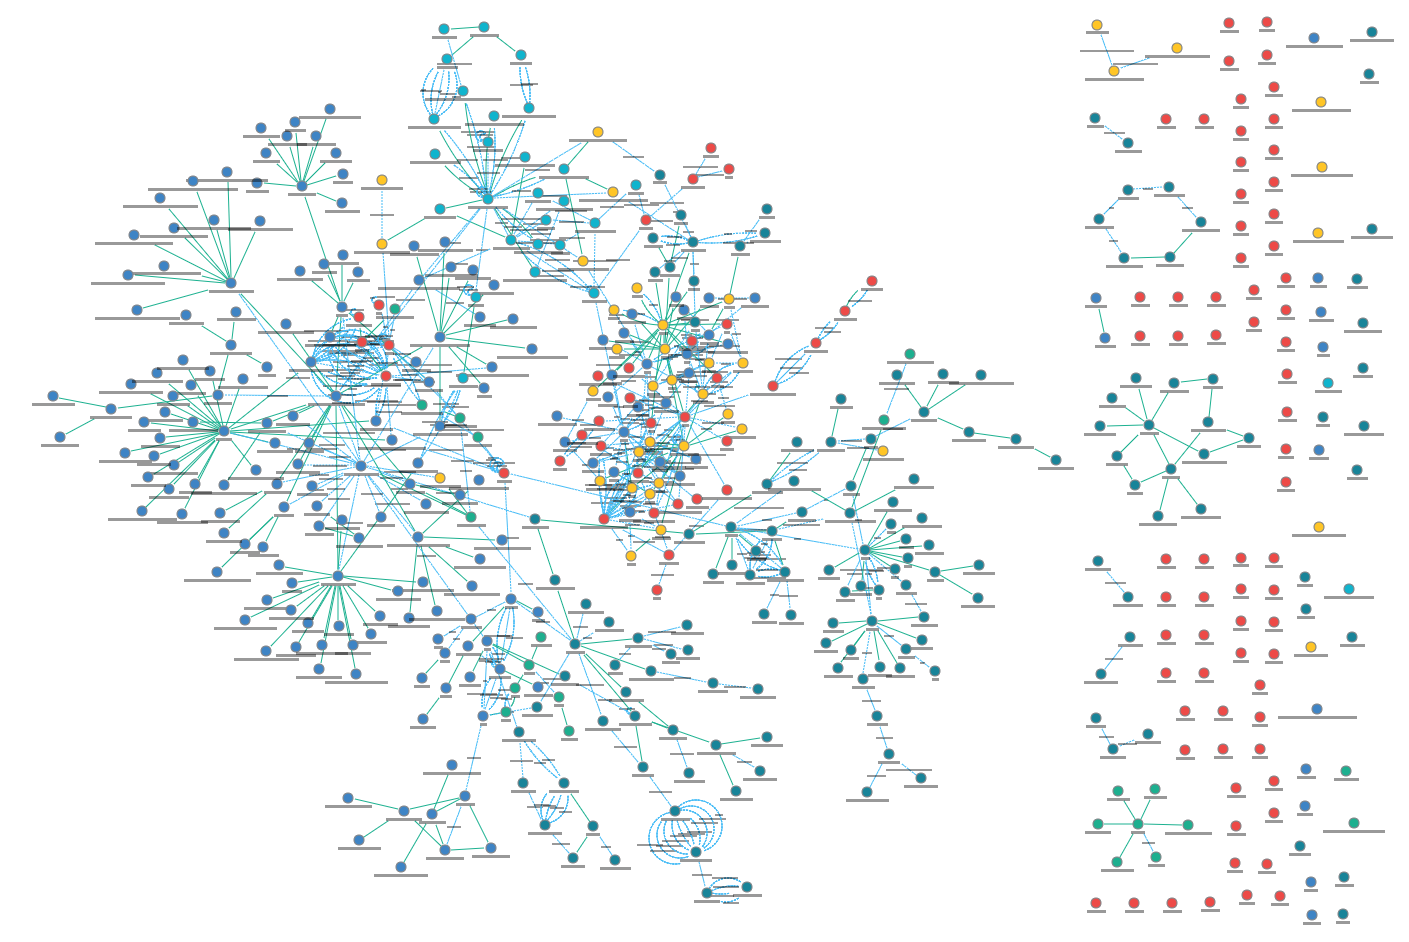 4.0 graph network